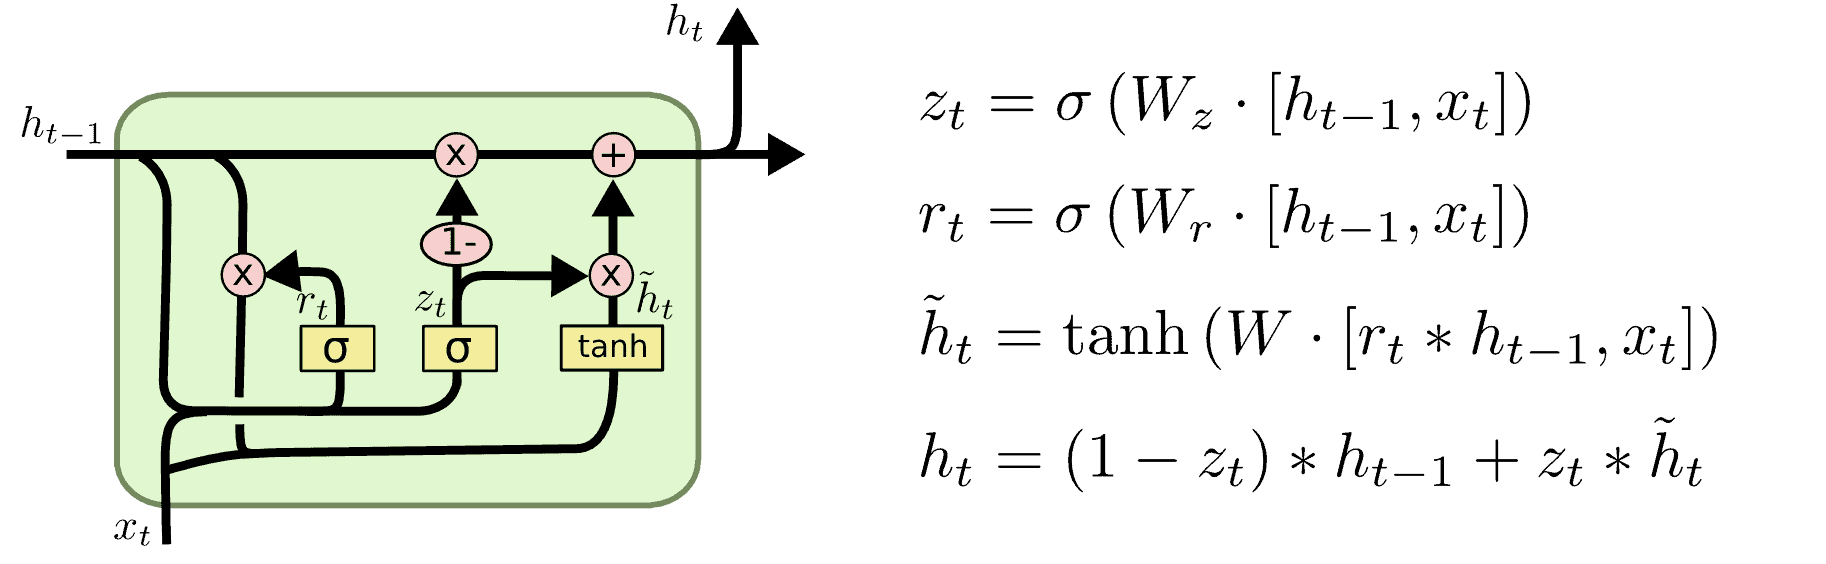 Gated Recurrent Units